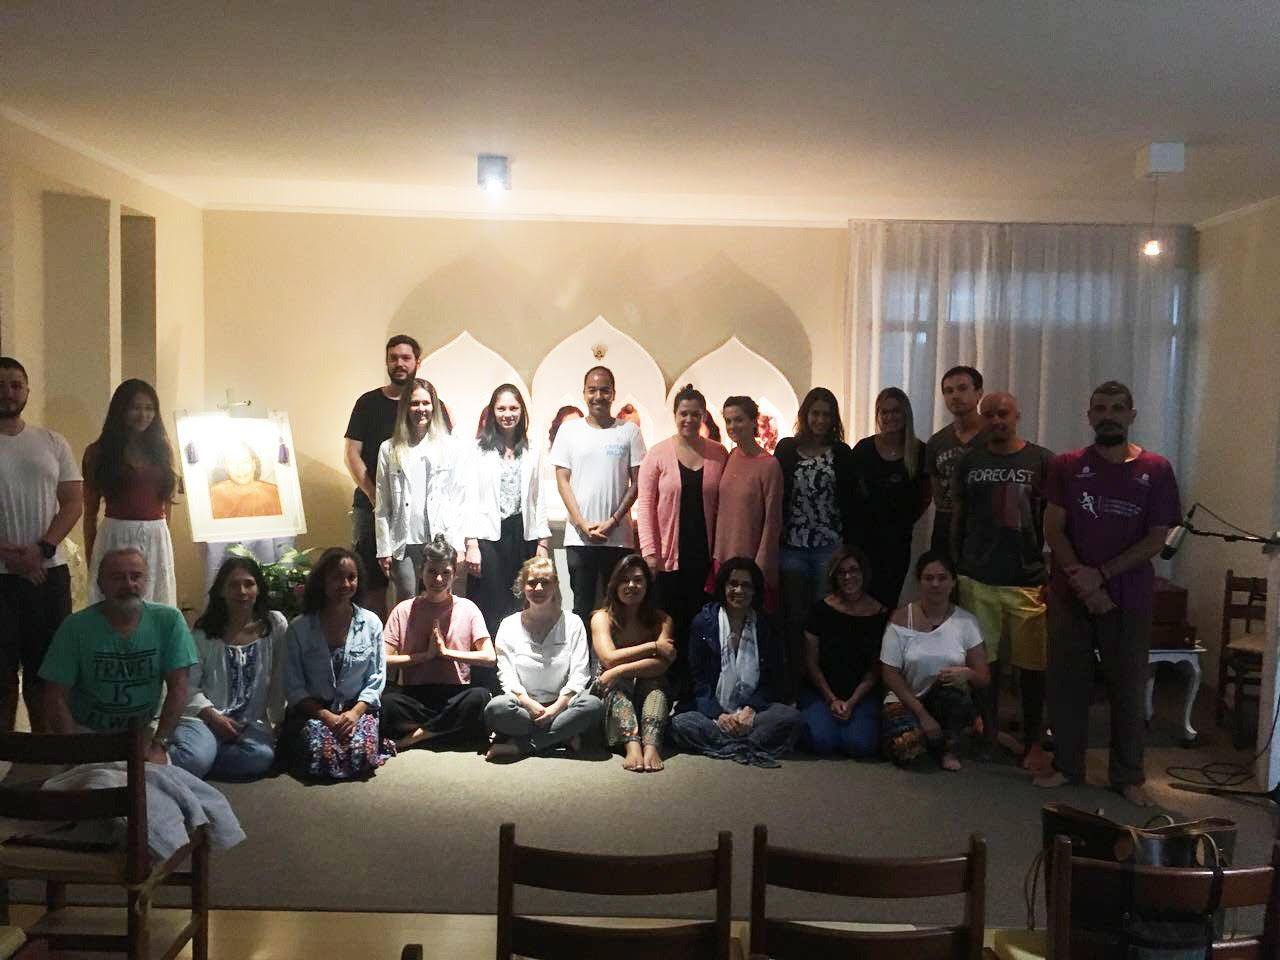 grupo-de-jovens-adultos-self-realization-fellowship-vila-madalena-sp